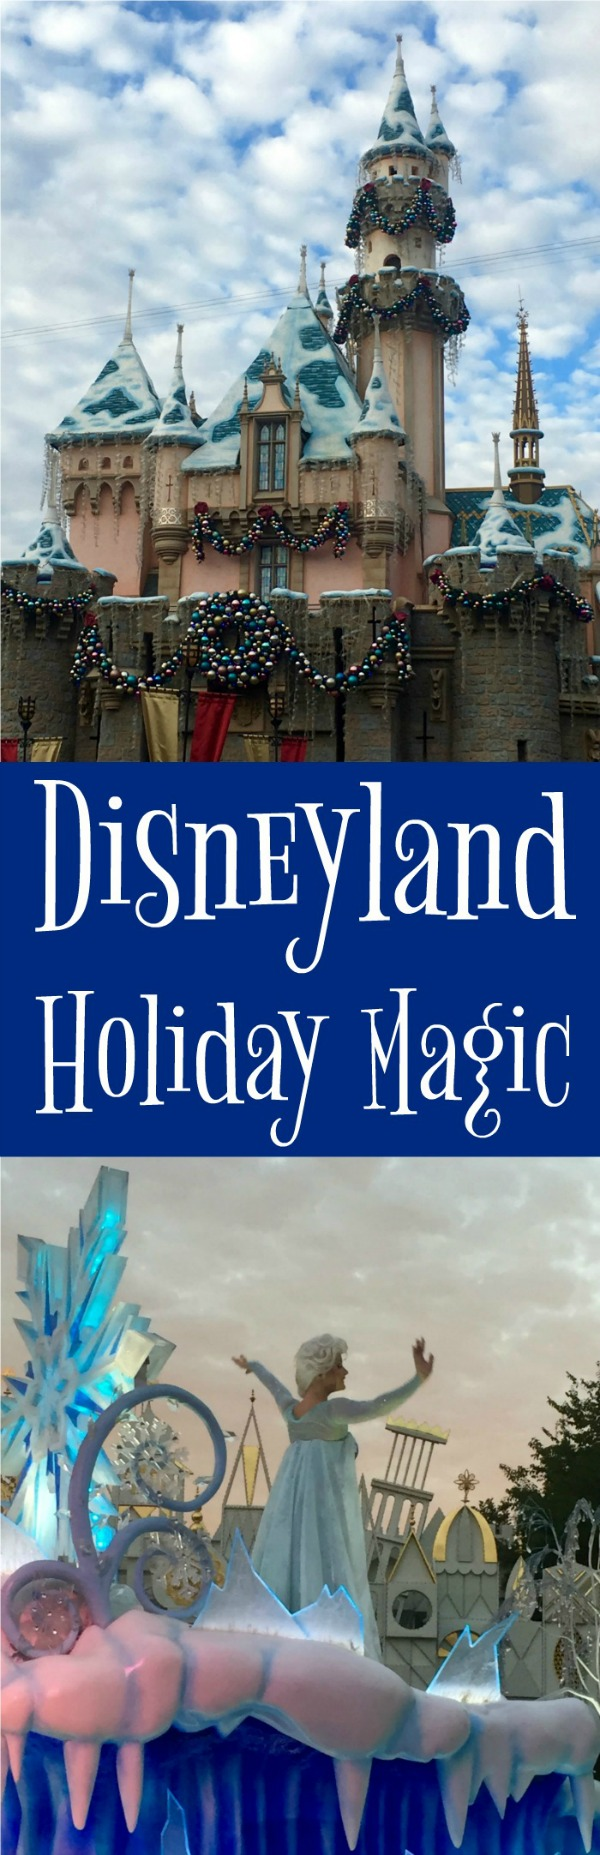 Disneyland Holiday Magic - Simple Sojourns